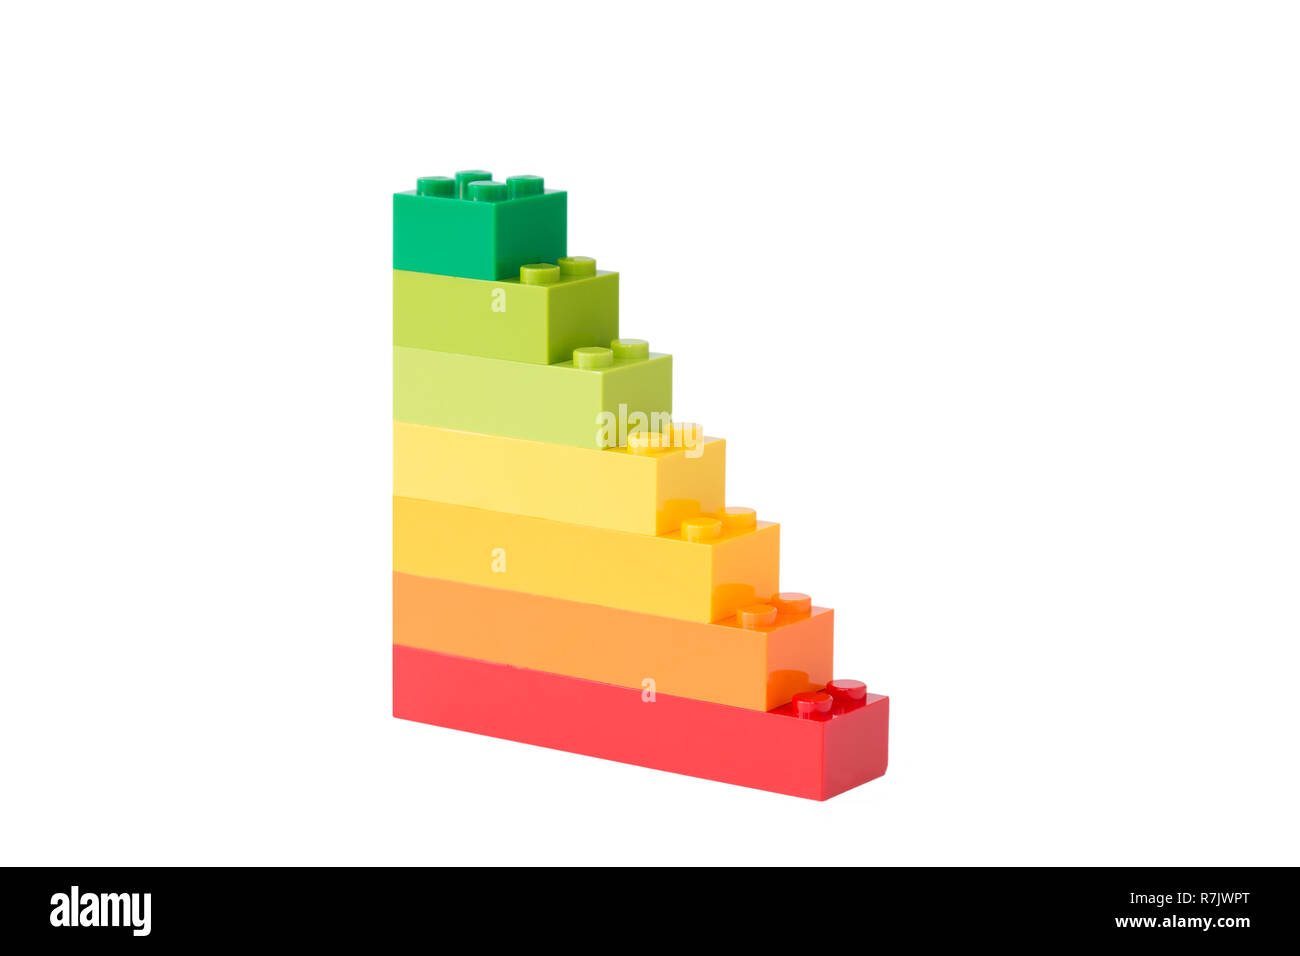 Empty European Union energy efficiency label made of toy building bricks, side view, isolated on white background. - Stock Image